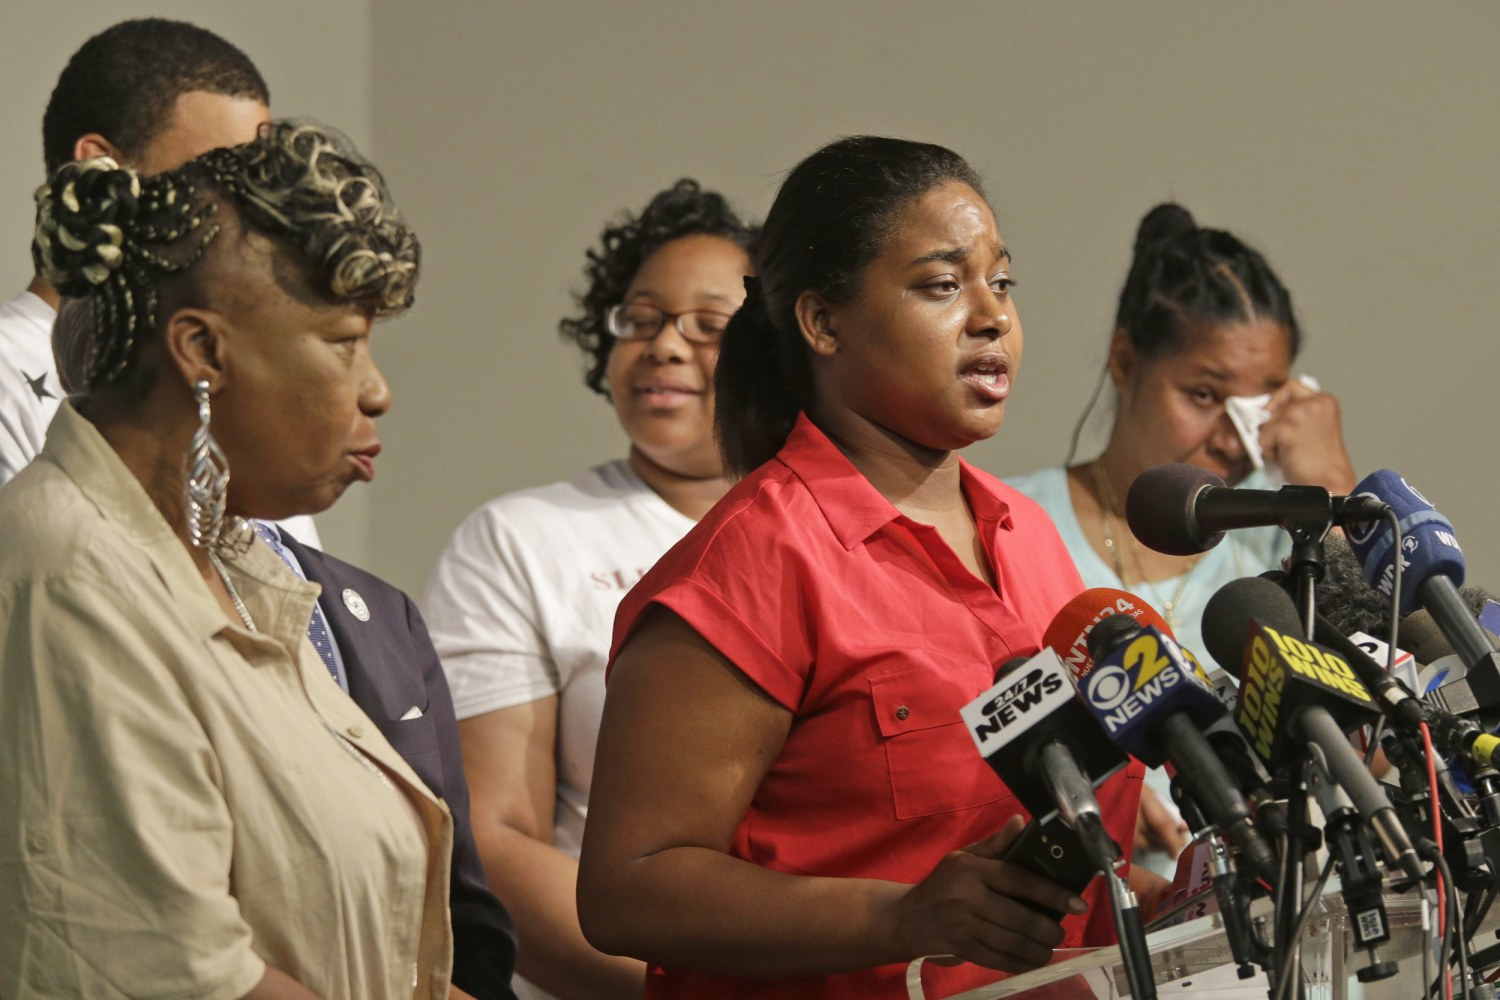 Erica Garner, Daughter of Eric Garner Dies at 27